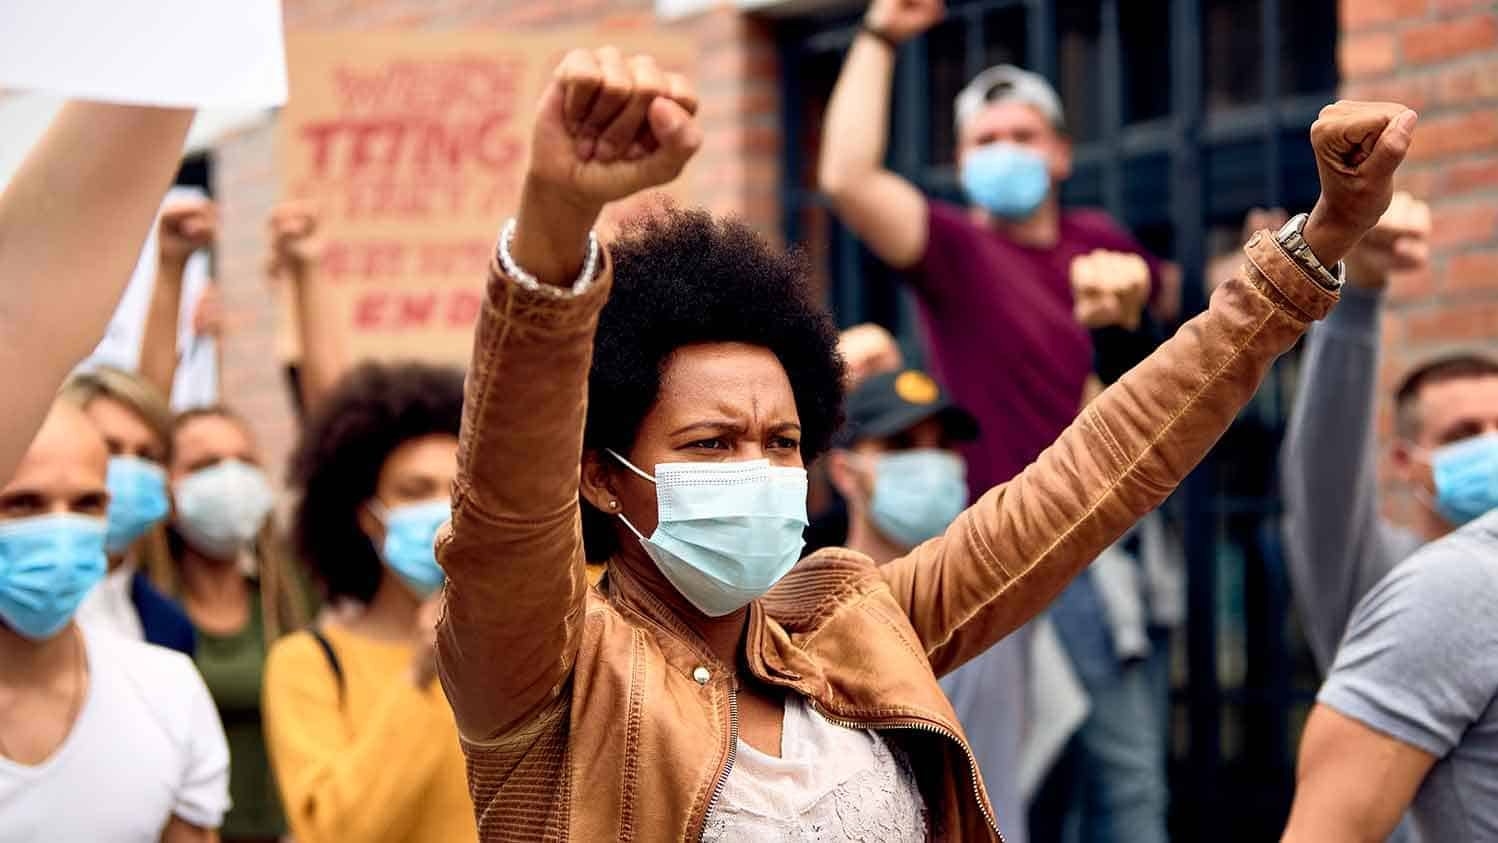 Black woman marching in protest arms aloft, ppe mask on